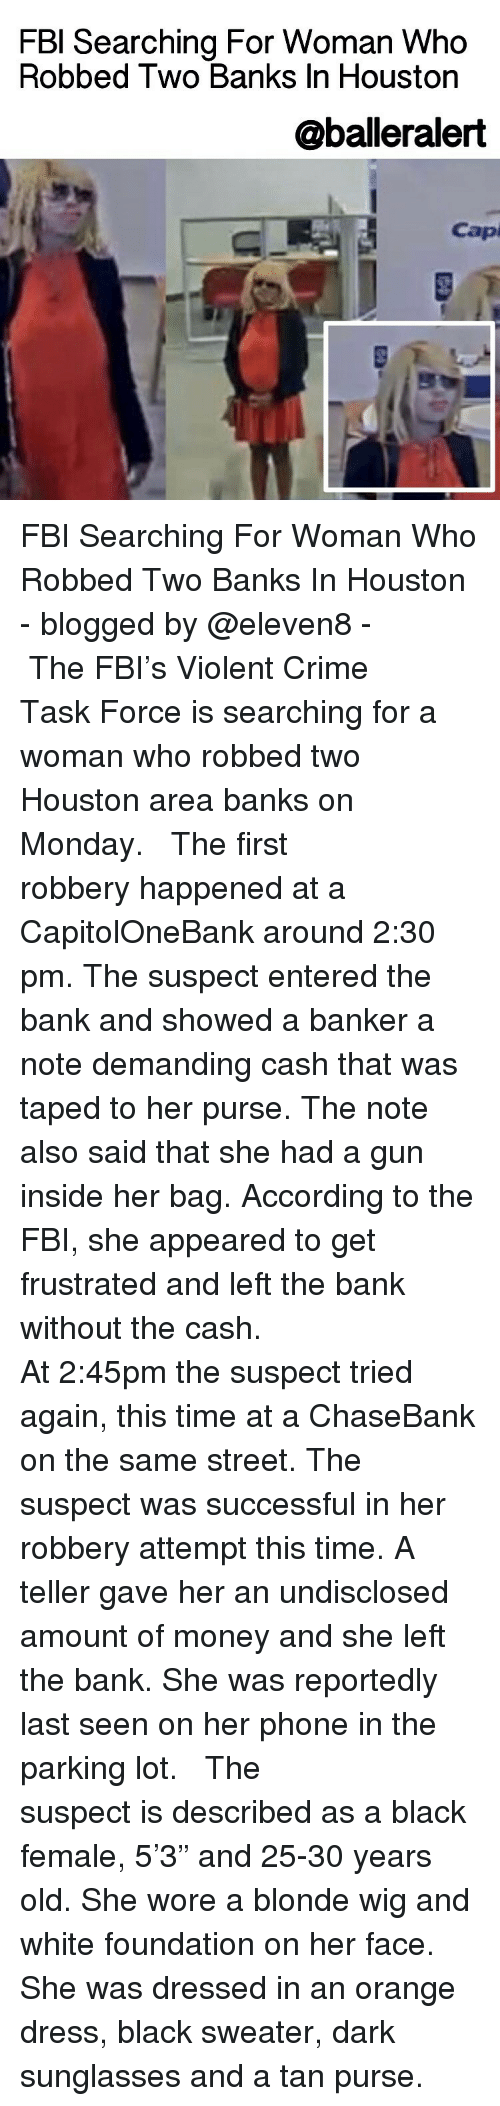 """accordance: FBI Searching For Woman Who  Robbed Two Banks In Houston  @balleralert  Capi FBI Searching For Woman Who Robbed Two Banks In Houston - blogged by @eleven8 - ⠀⠀⠀⠀⠀⠀⠀⠀⠀ ⠀⠀⠀⠀⠀⠀⠀⠀⠀ The FBI's Violent Crime Task Force is searching for a woman who robbed two Houston area banks on Monday. ⠀⠀⠀⠀⠀⠀⠀⠀⠀ ⠀⠀⠀⠀⠀⠀⠀⠀⠀ The first robbery happened at a CapitolOneBank around 2:30 pm. The suspect entered the bank and showed a banker a note demanding cash that was taped to her purse. The note also said that she had a gun inside her bag. According to the FBI, she appeared to get frustrated and left the bank without the cash. ⠀⠀⠀⠀⠀⠀⠀⠀⠀ ⠀⠀⠀⠀⠀⠀⠀⠀⠀ At 2:45pm the suspect tried again, this time at a ChaseBank on the same street. The suspect was successful in her robbery attempt this time. A teller gave her an undisclosed amount of money and she left the bank. She was reportedly last seen on her phone in the parking lot. ⠀⠀⠀⠀⠀⠀⠀⠀⠀ ⠀⠀⠀⠀⠀⠀⠀⠀⠀ The suspect is described as a black female, 5'3"""" and 25-30 years old. She wore a blonde wig and white foundation on her face. She was dressed in an orange dress, black sweater, dark sunglasses and a tan purse."""